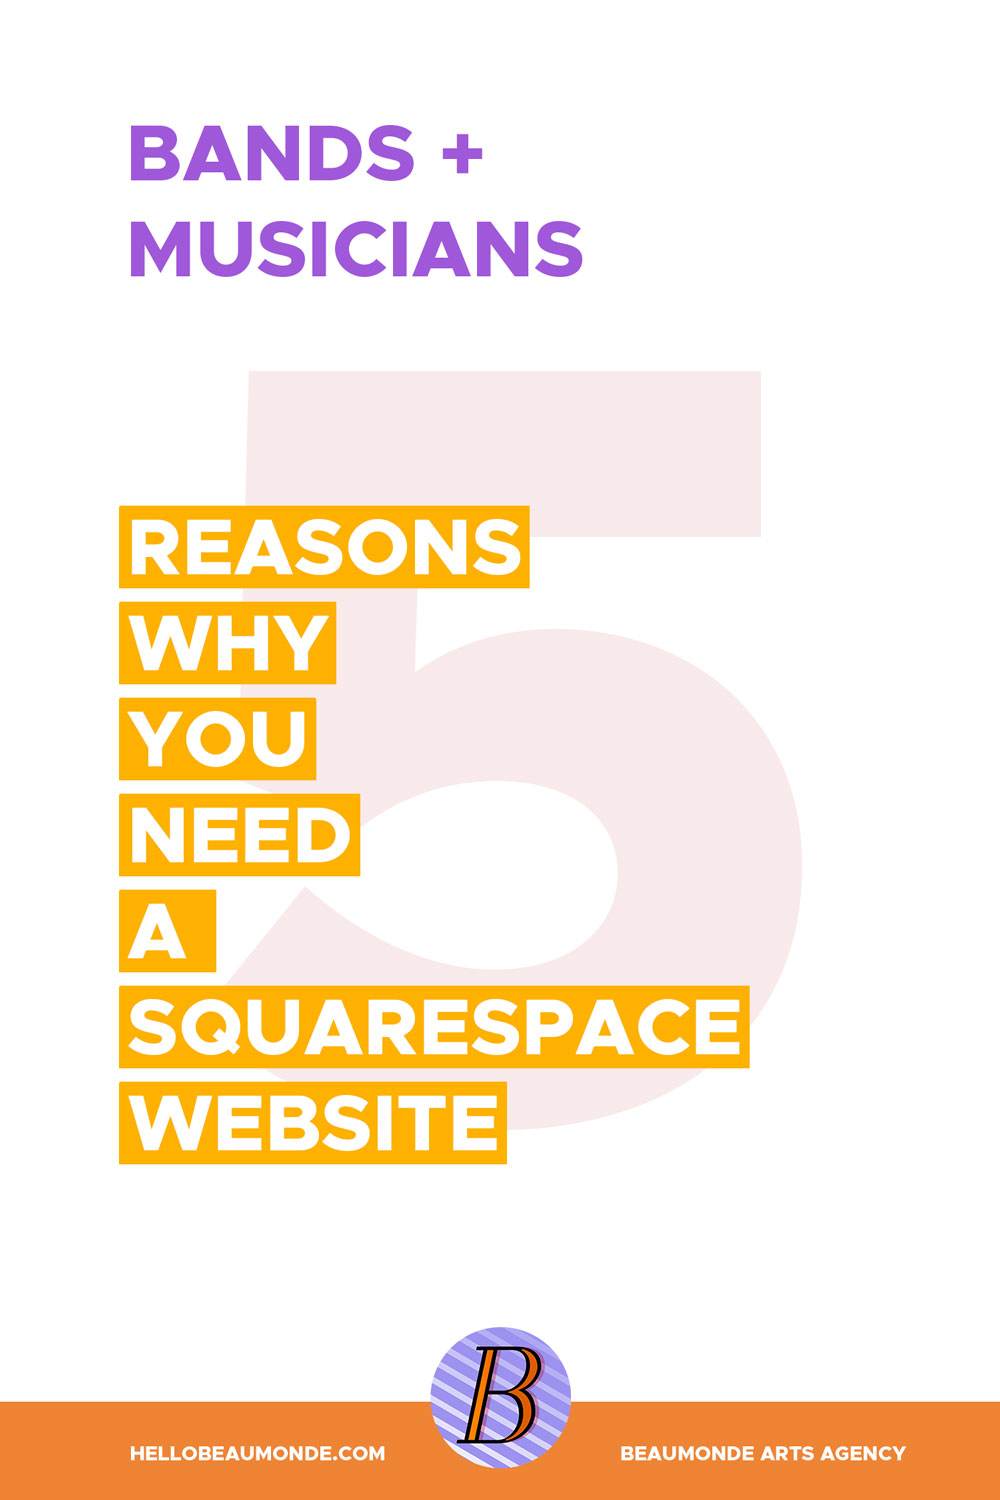 bands-and-musicians-five-reasons-why-you-need-a-squarespace-website.jpg